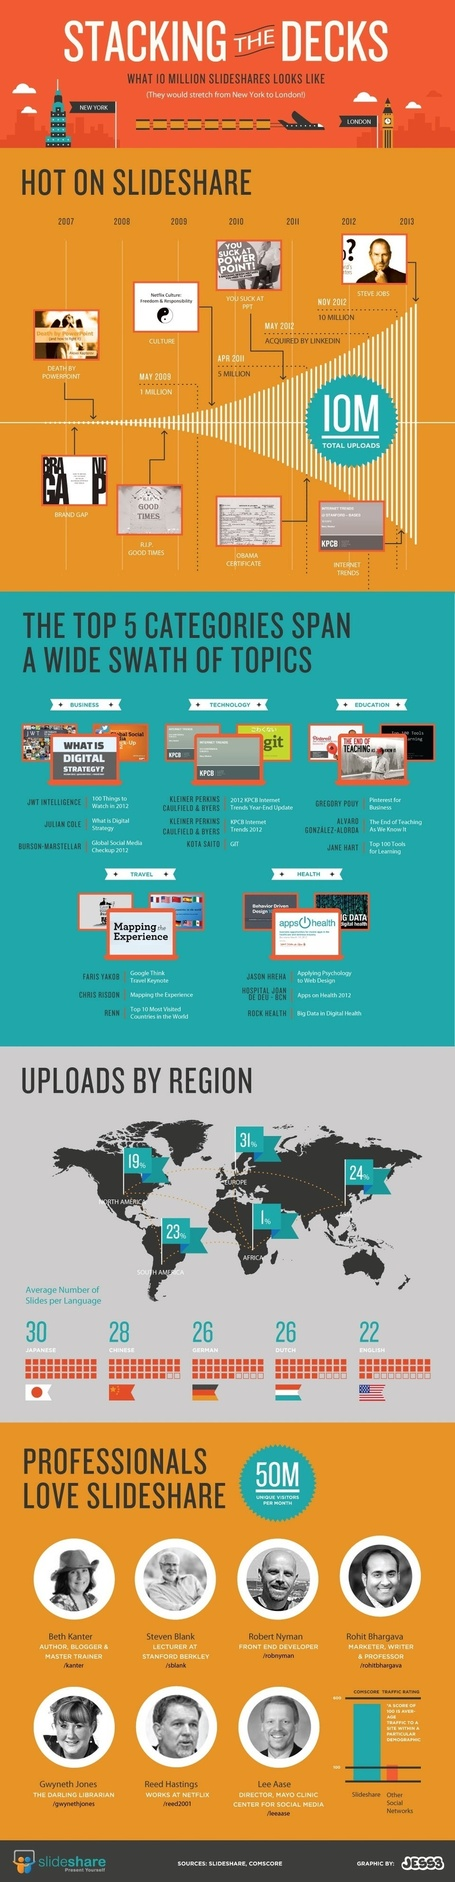 Slideshare reaches 10 million uploads ..  Top 100 Tools slideset is featured. | iGeneration - 21st Century Education | Scoop.it